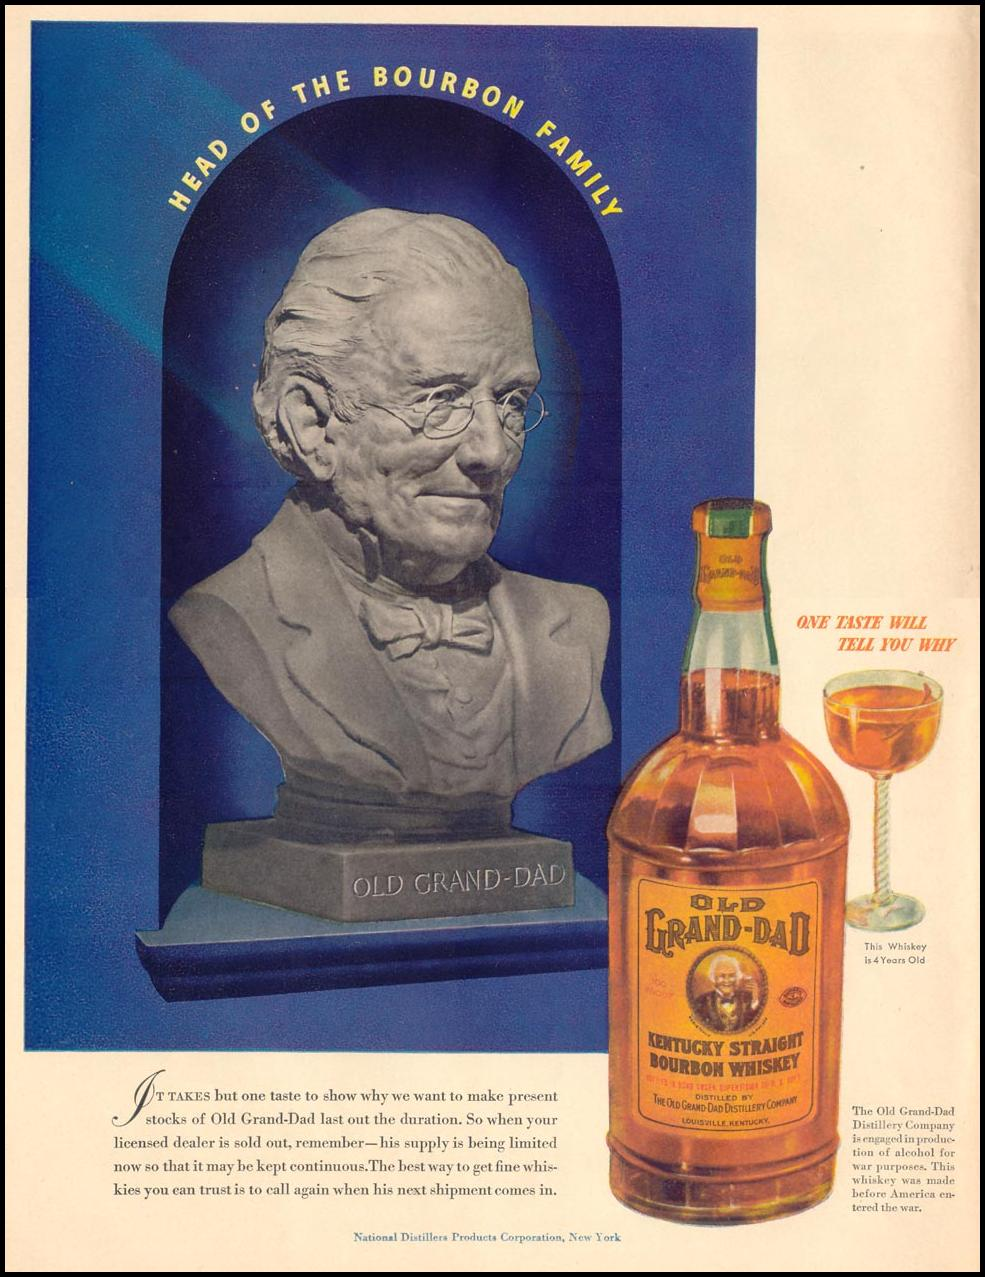 OLD GRAND-DAD KENTUCKY STRAIGHT BOURBON WHISKEY LIFE 11/08/1943